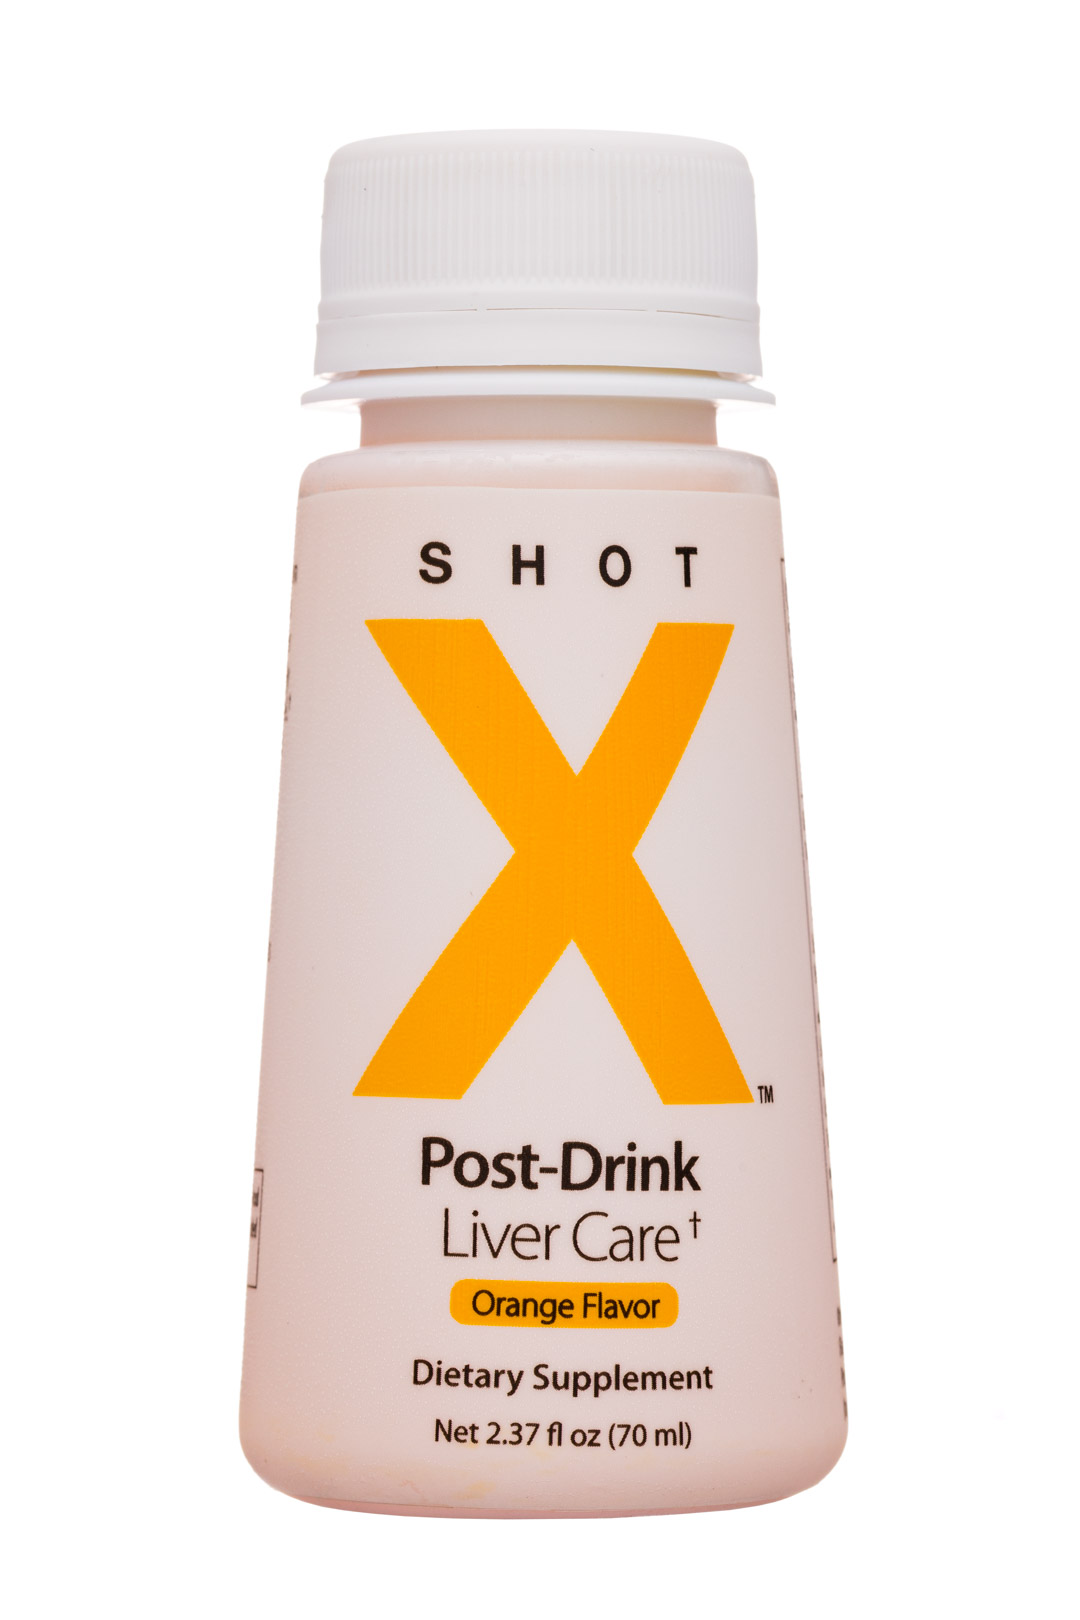 Post-Drink Liver Care